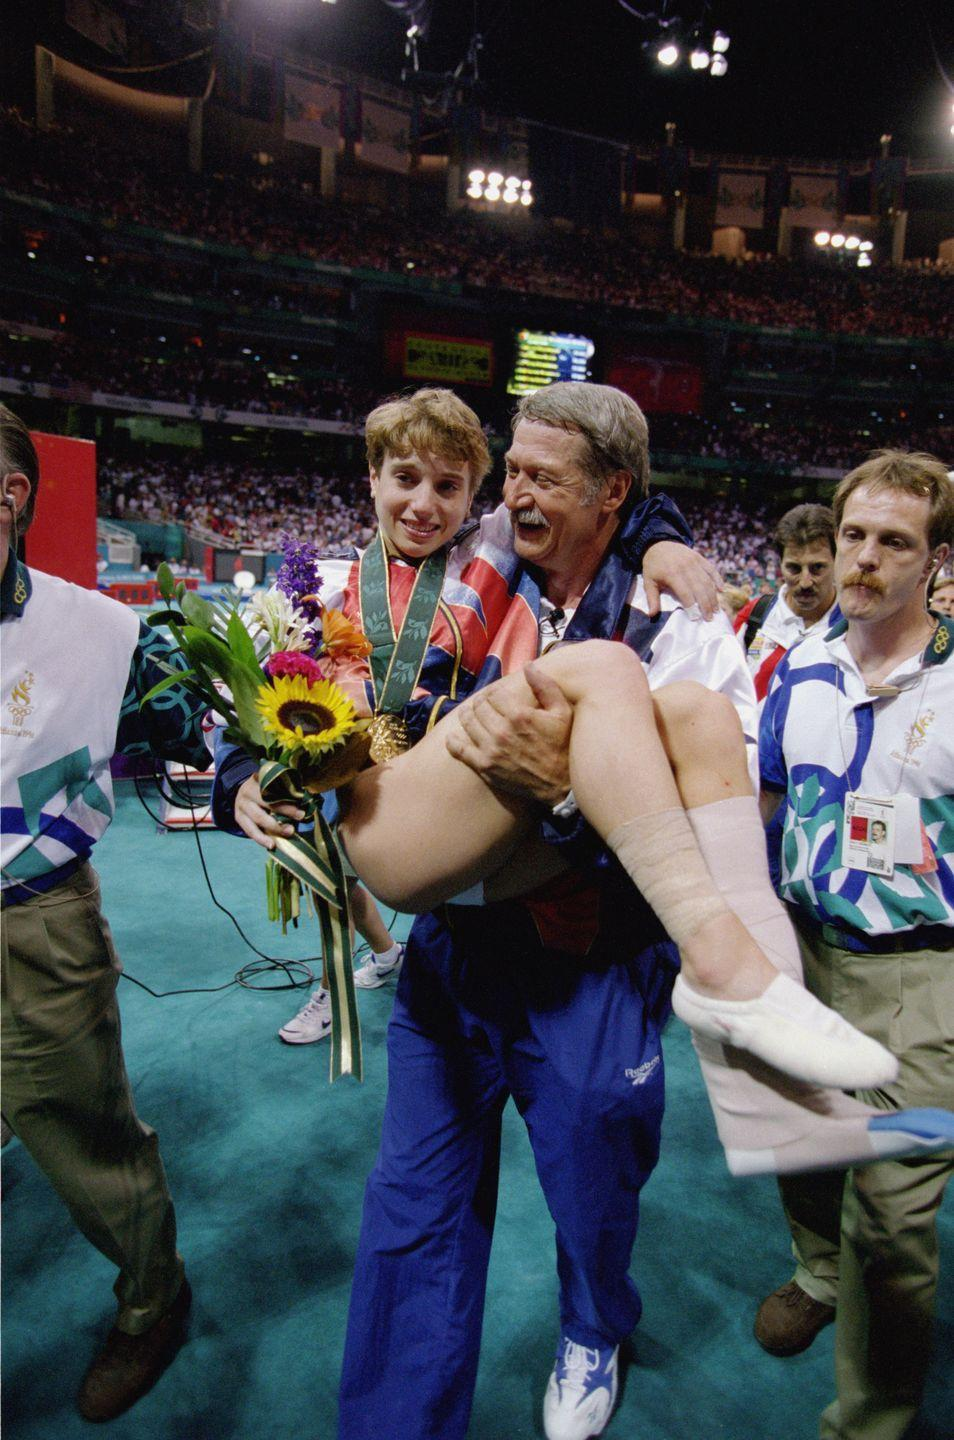 """<p>When Kerri Strug first represented the United States at the 1992 Olympics, she was the team's youngest athlete at just 14 years old. Four years later, she competed as one of the Magnificent Seven where she famously <a href=""""https://www.strug.org/"""" rel=""""nofollow noopener"""" target=""""_blank"""" data-ylk=""""slk:injured her ankle"""" class=""""link rapid-noclick-resp"""">injured her ankle</a> on the vault but carried on with her routine to win the United States the team gold medal. </p>"""